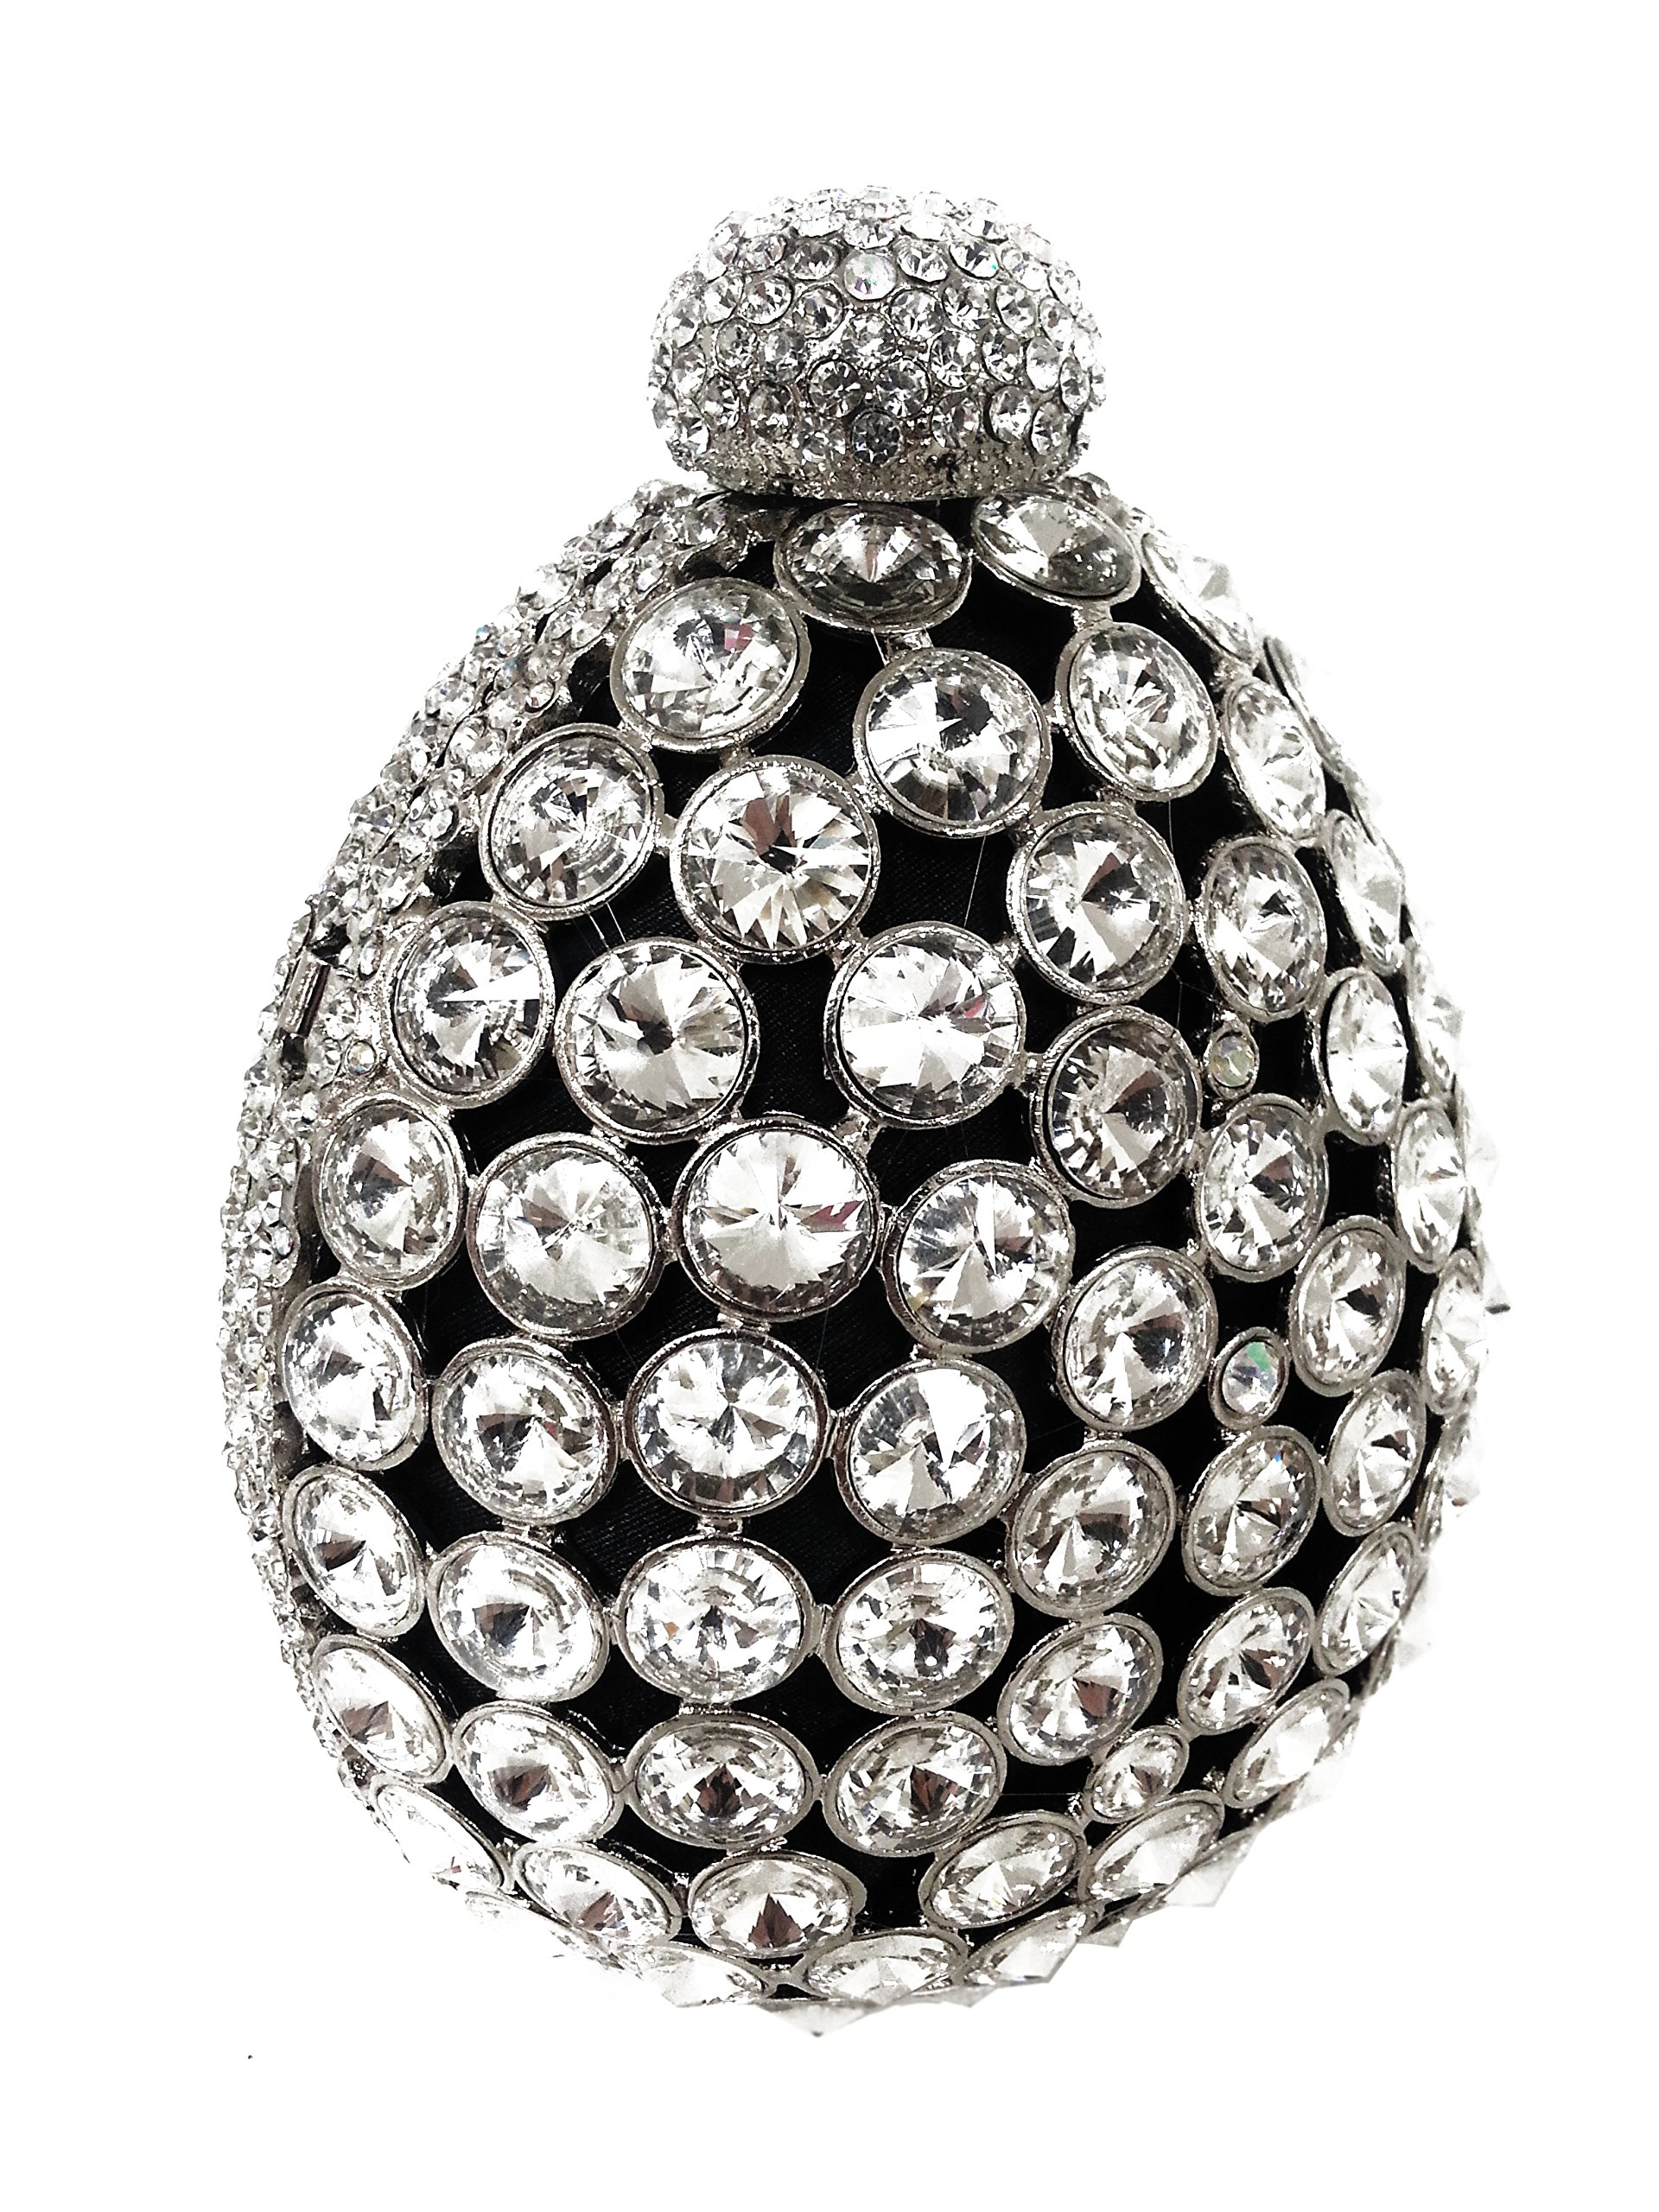 Rhinestone Antique-Style Clutch Clear Silver Purse - CLEARANCE by Mr. Song Millinery